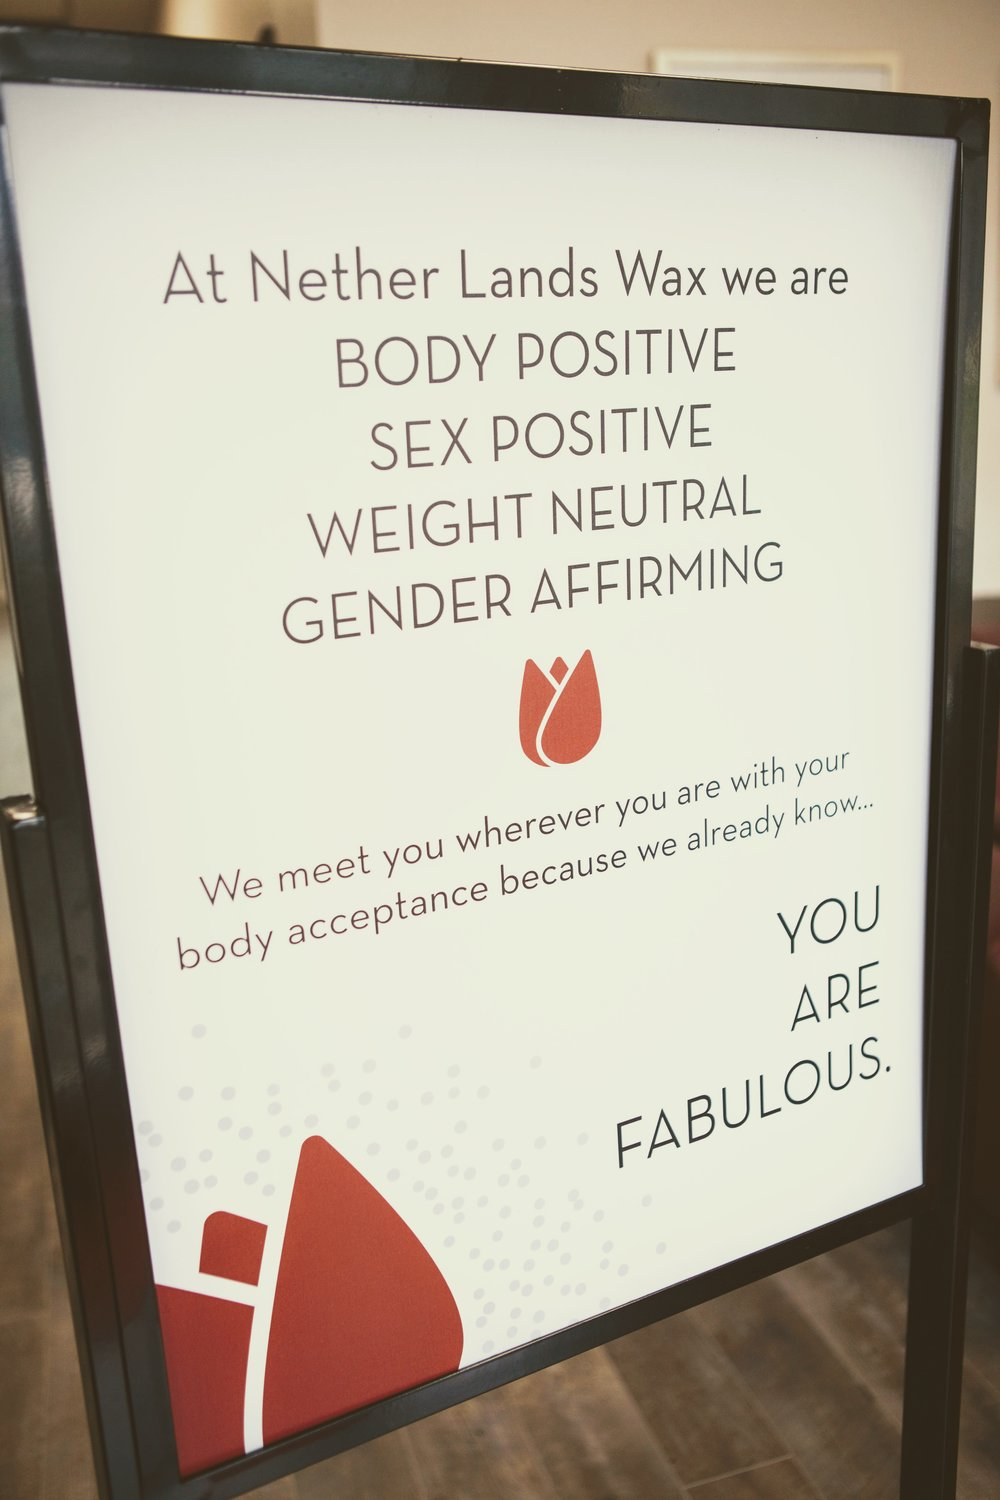 At Nether Lands Wax, we give more than just lip service to body positivity. We mean it when we say: YOU ARE FABULOUS.